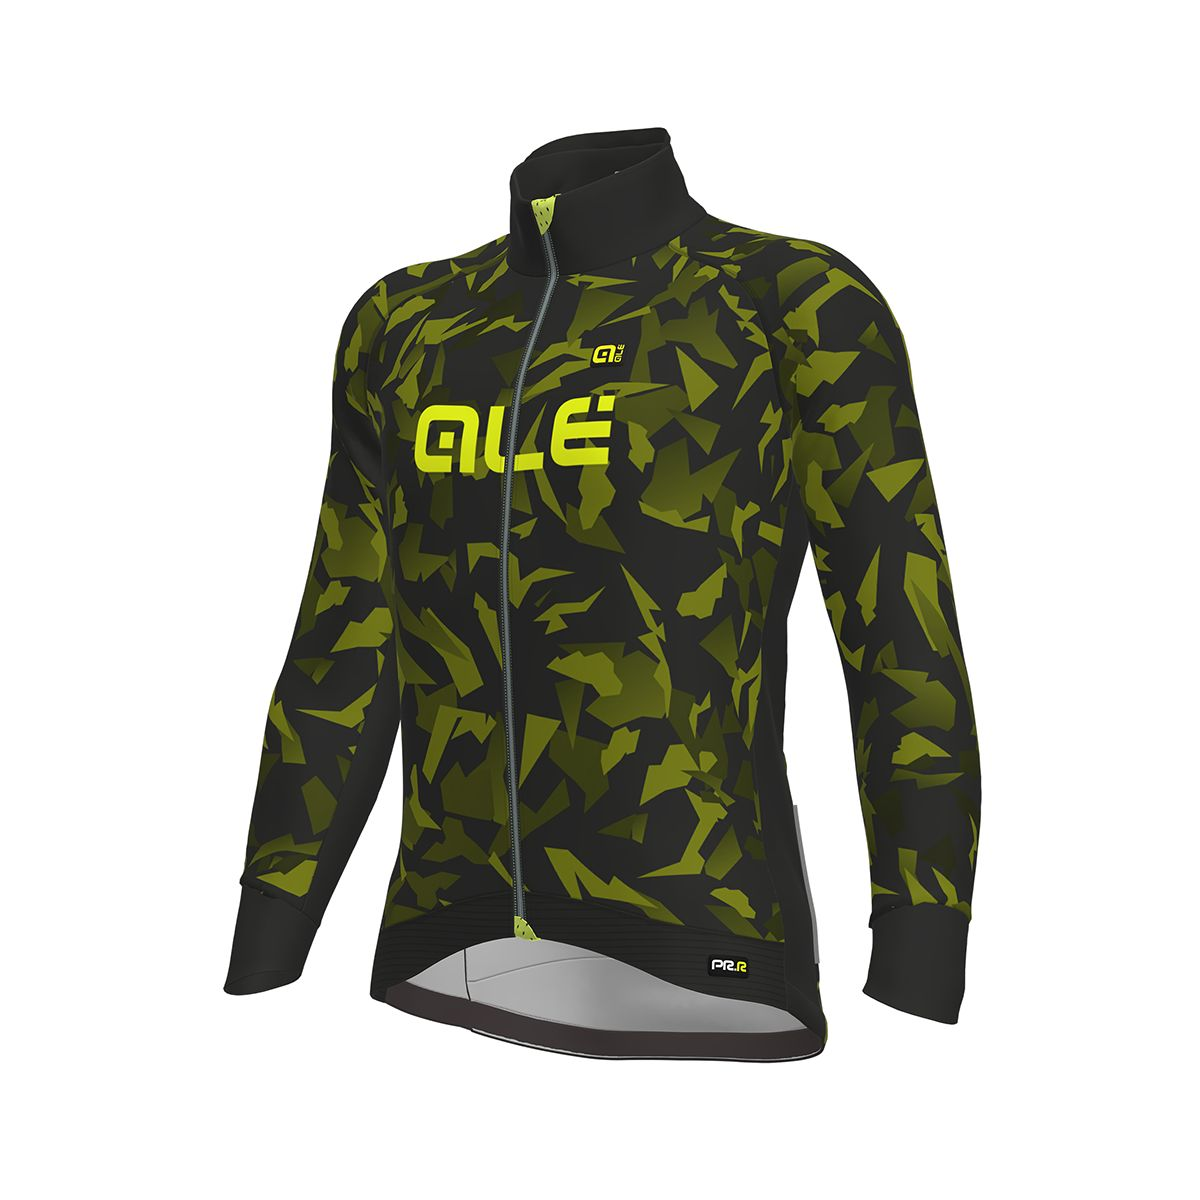 GRAPHICS PRR Glass Jkt cycling jacket